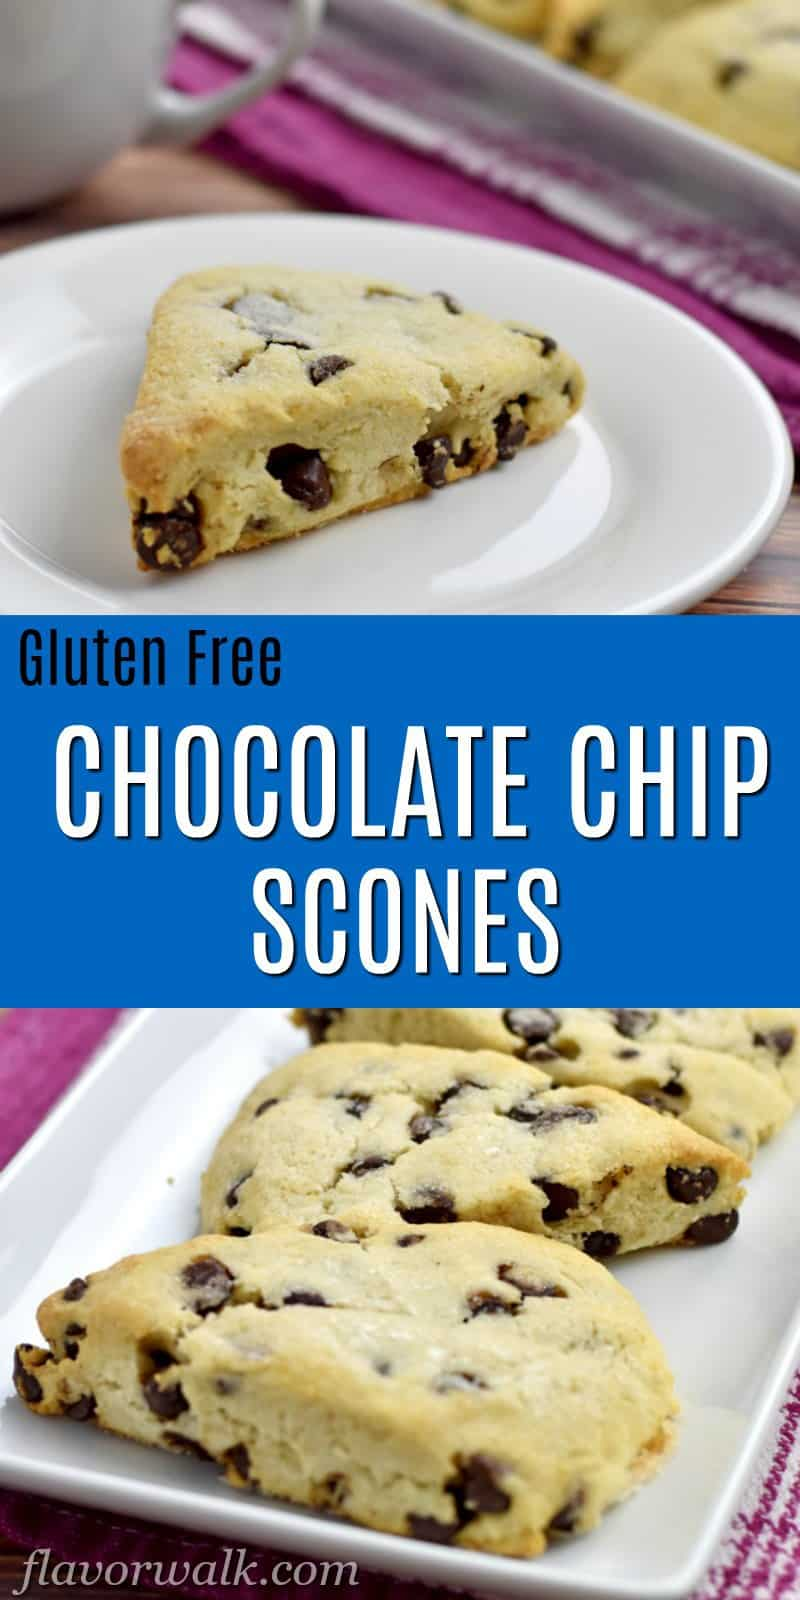 Top image is 1 gluten free chocolate chip scone on white plate with more scones and white coffee cup in background, bottom image is 3 scones on white rectangular plate, and middle image is text overlay on blue background